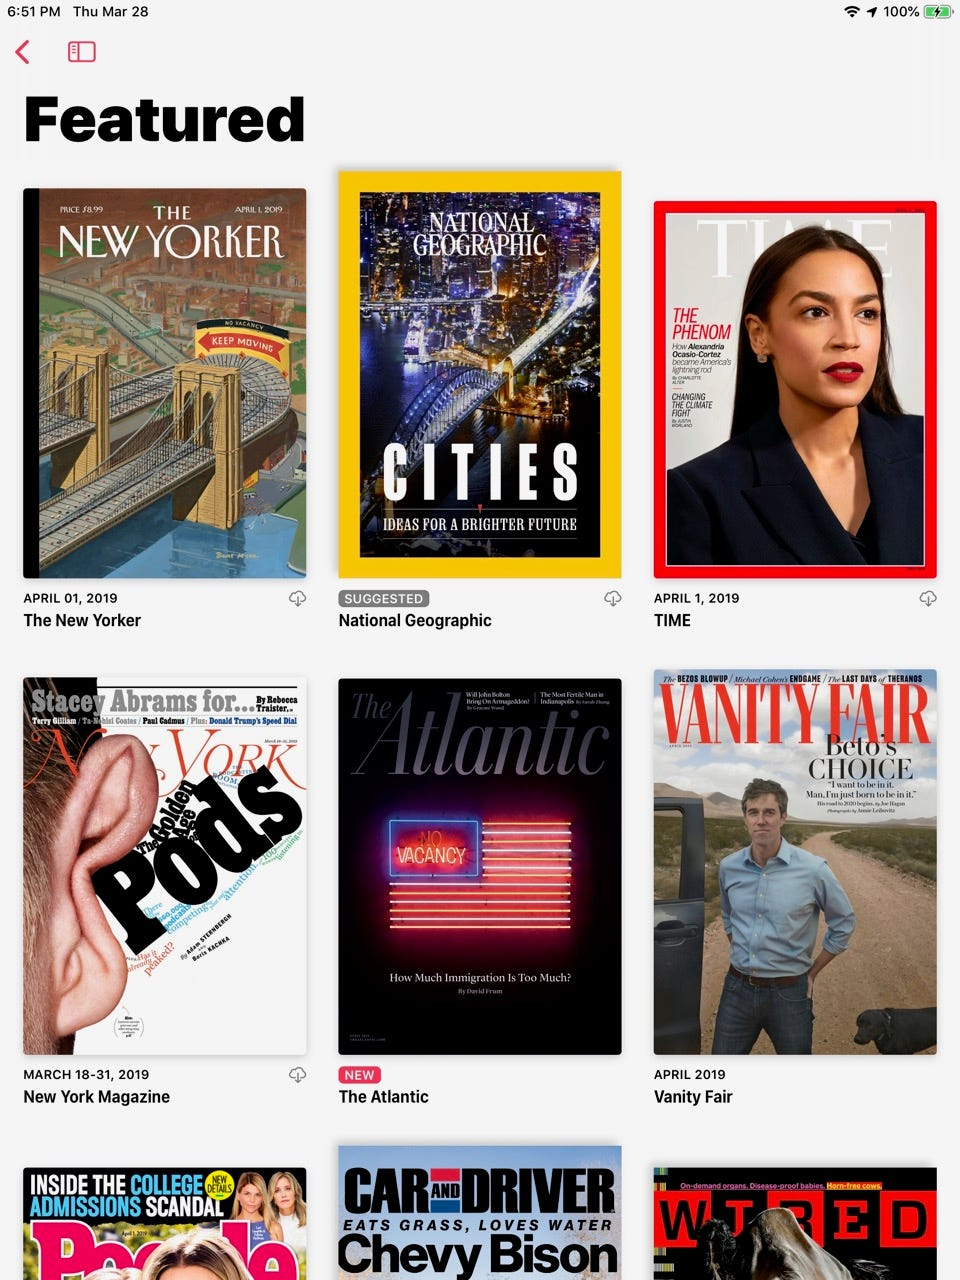 Apple News+: Are 300 magazines worth $9.99 a month?